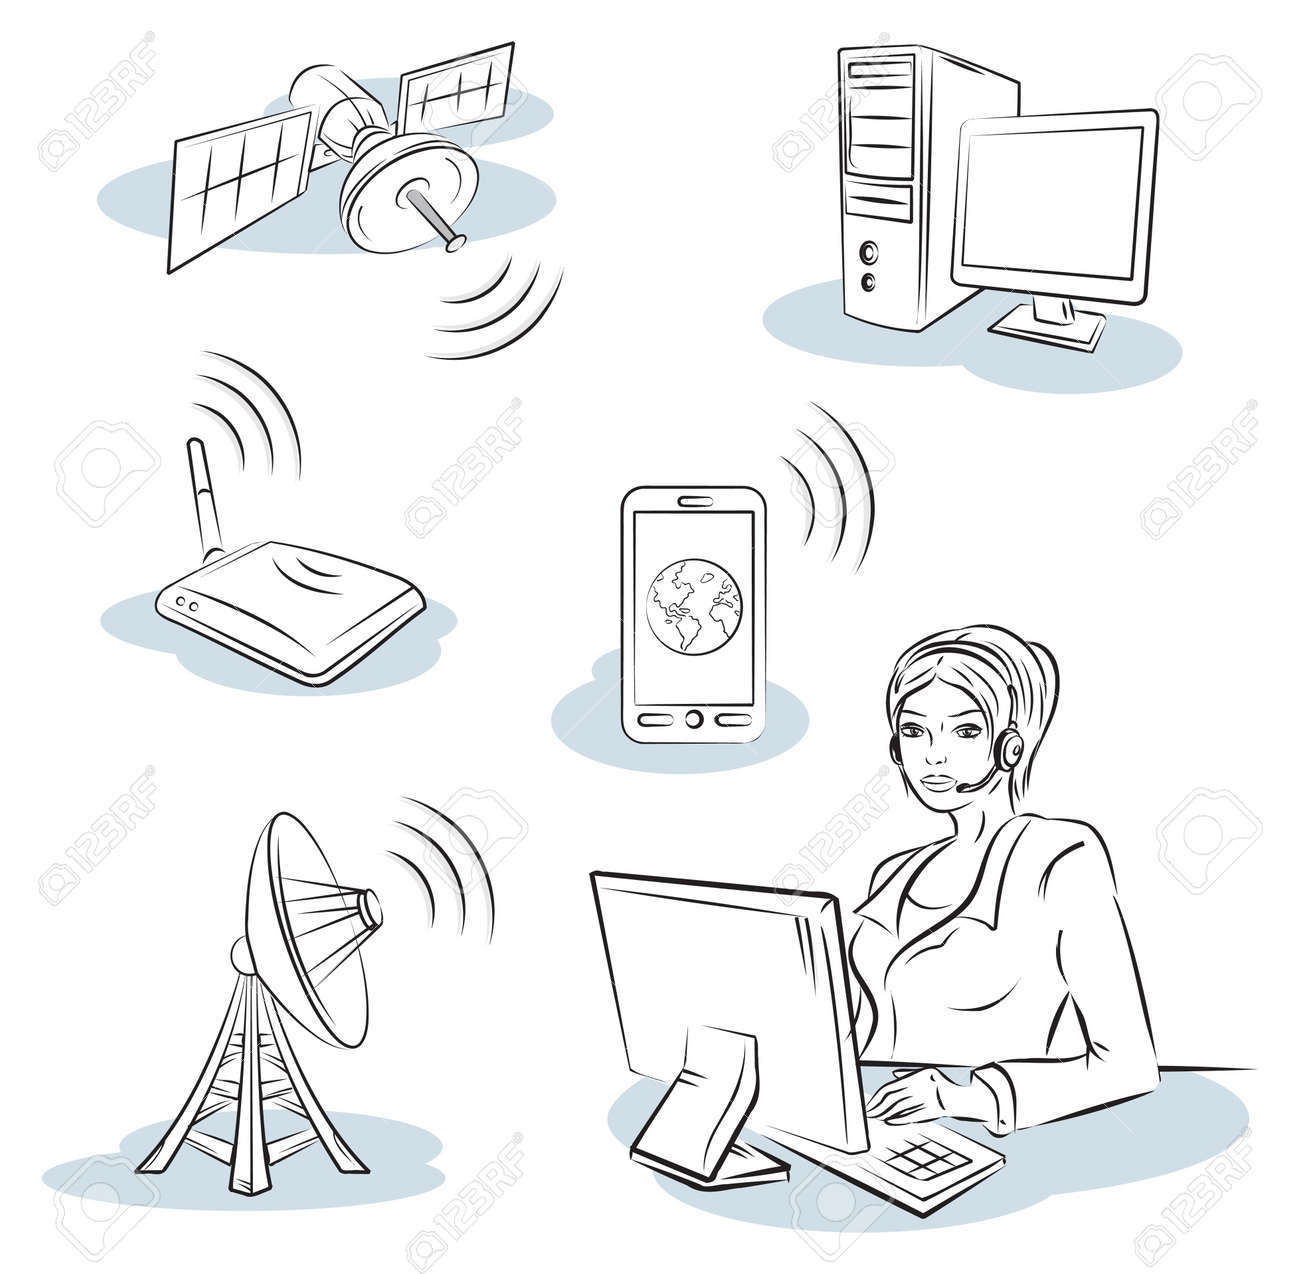 Wireless and communication Stock Vector - 13028052